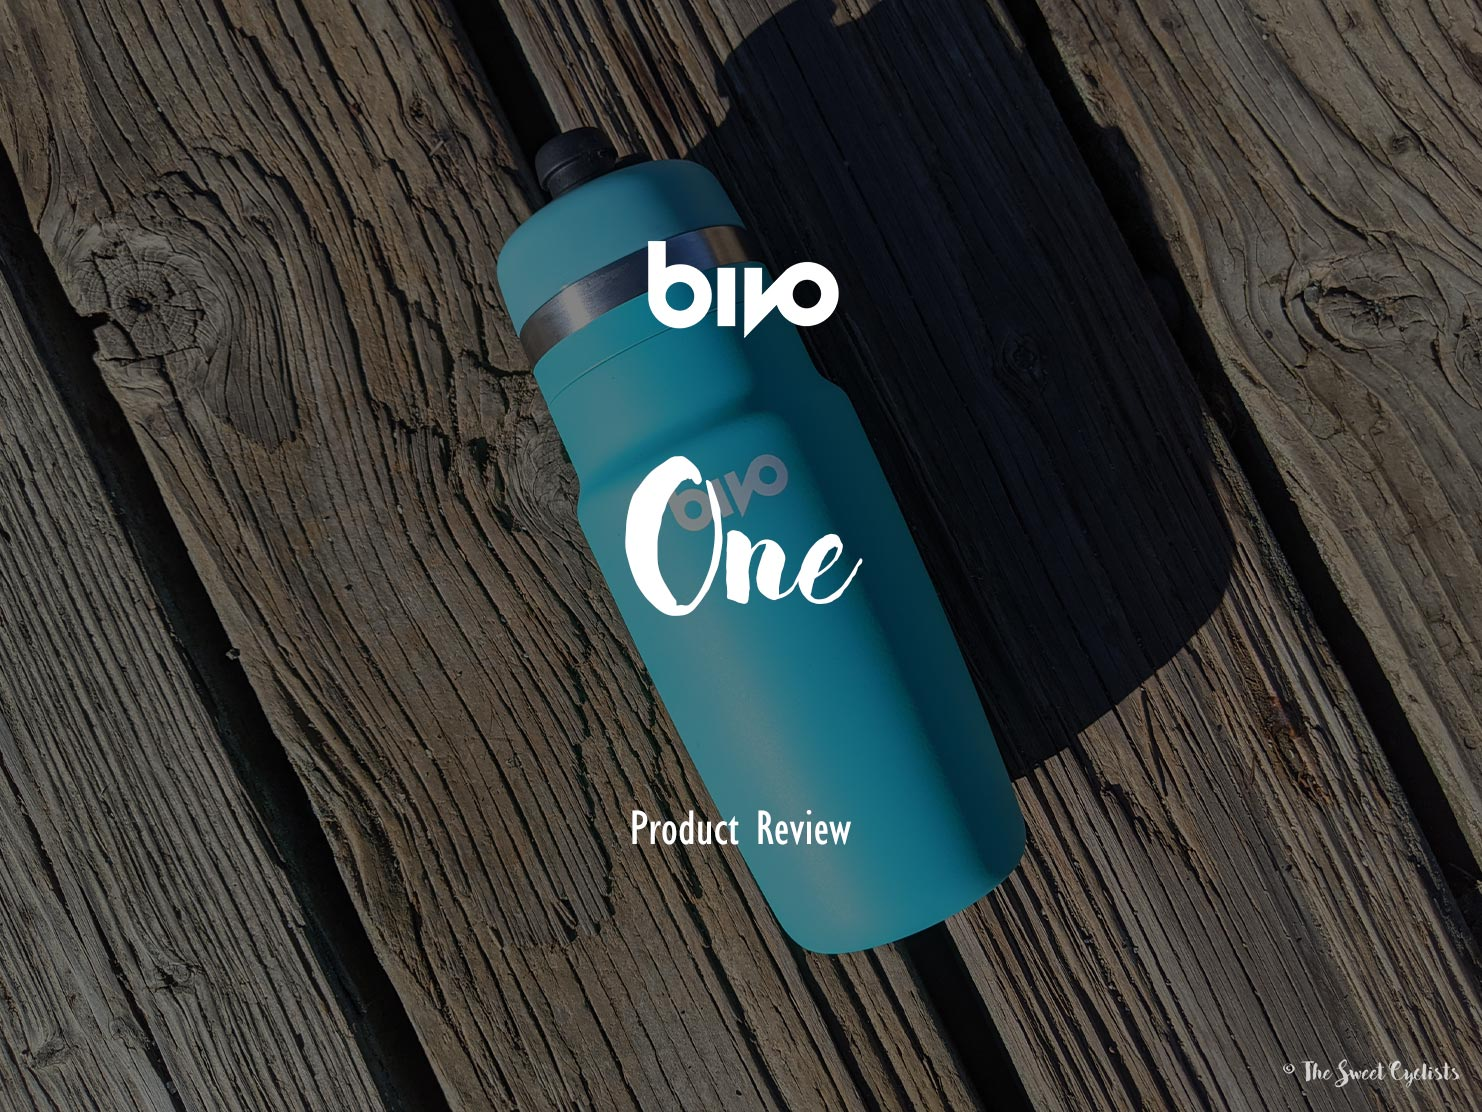 World's first stainless steel cycling bottle